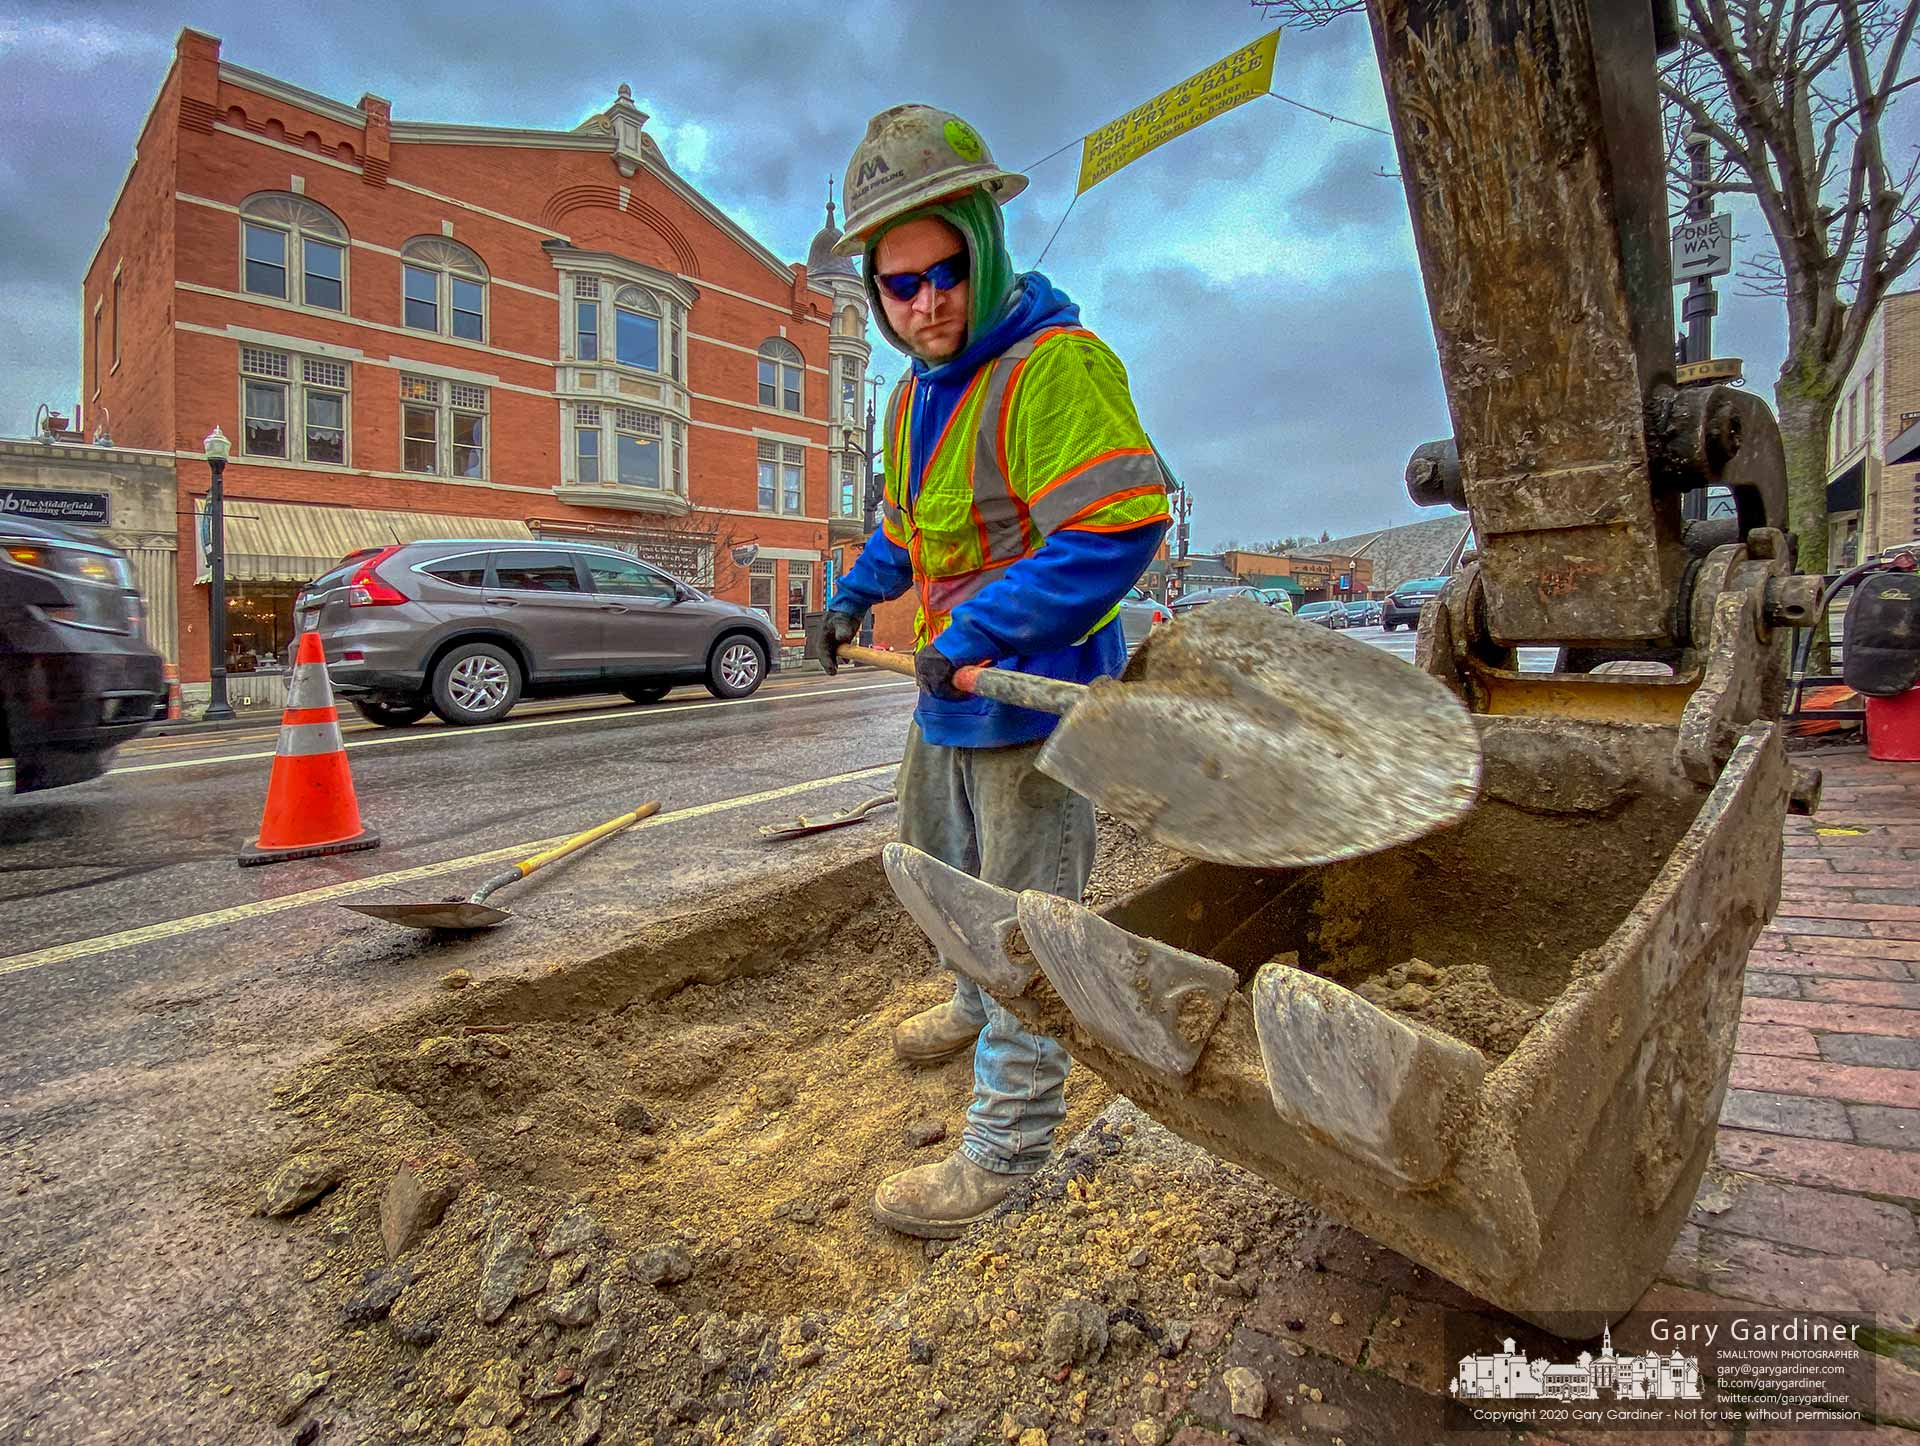 A Miller Pipeline worker uses a shovel to complete excavation of a section of State Street near Main to expose old natural gas lines that will be capped as the service is delivered recently installed pipeline at the rear of buildings in sections of Uptown. My Final Photo for Feb. 25, 2020.